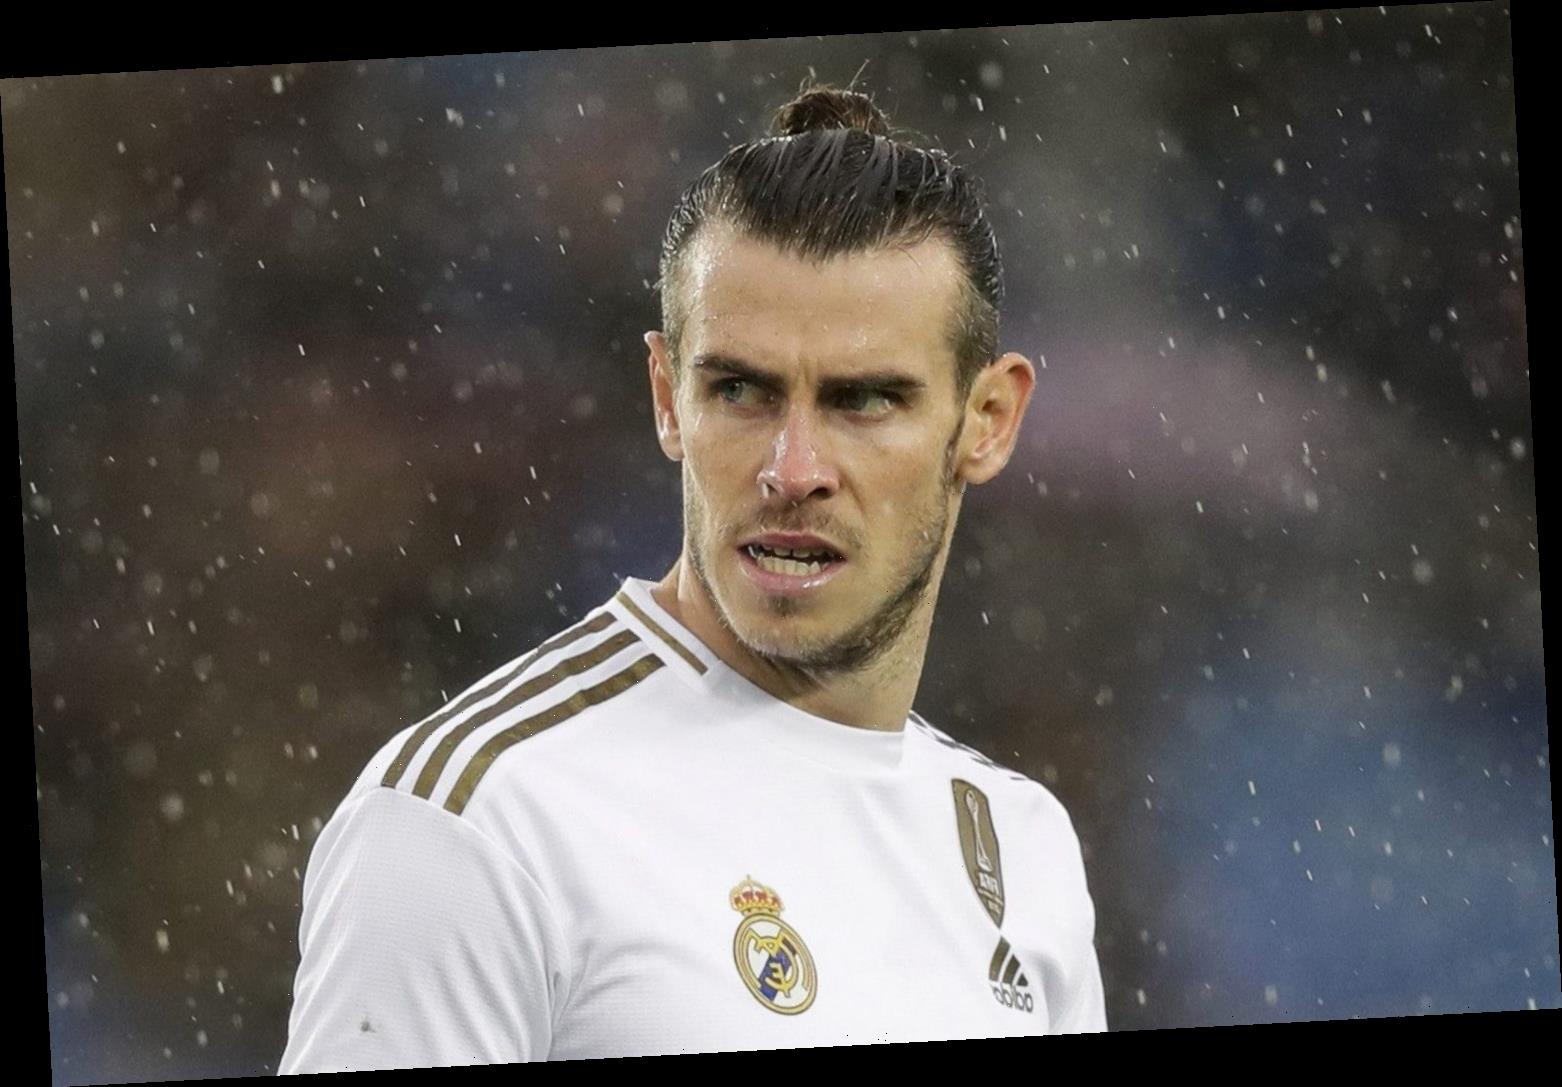 Man Utd target Bale dismisses Real Madrid fans by saying he just 'shrugs off' their boos – The Sun